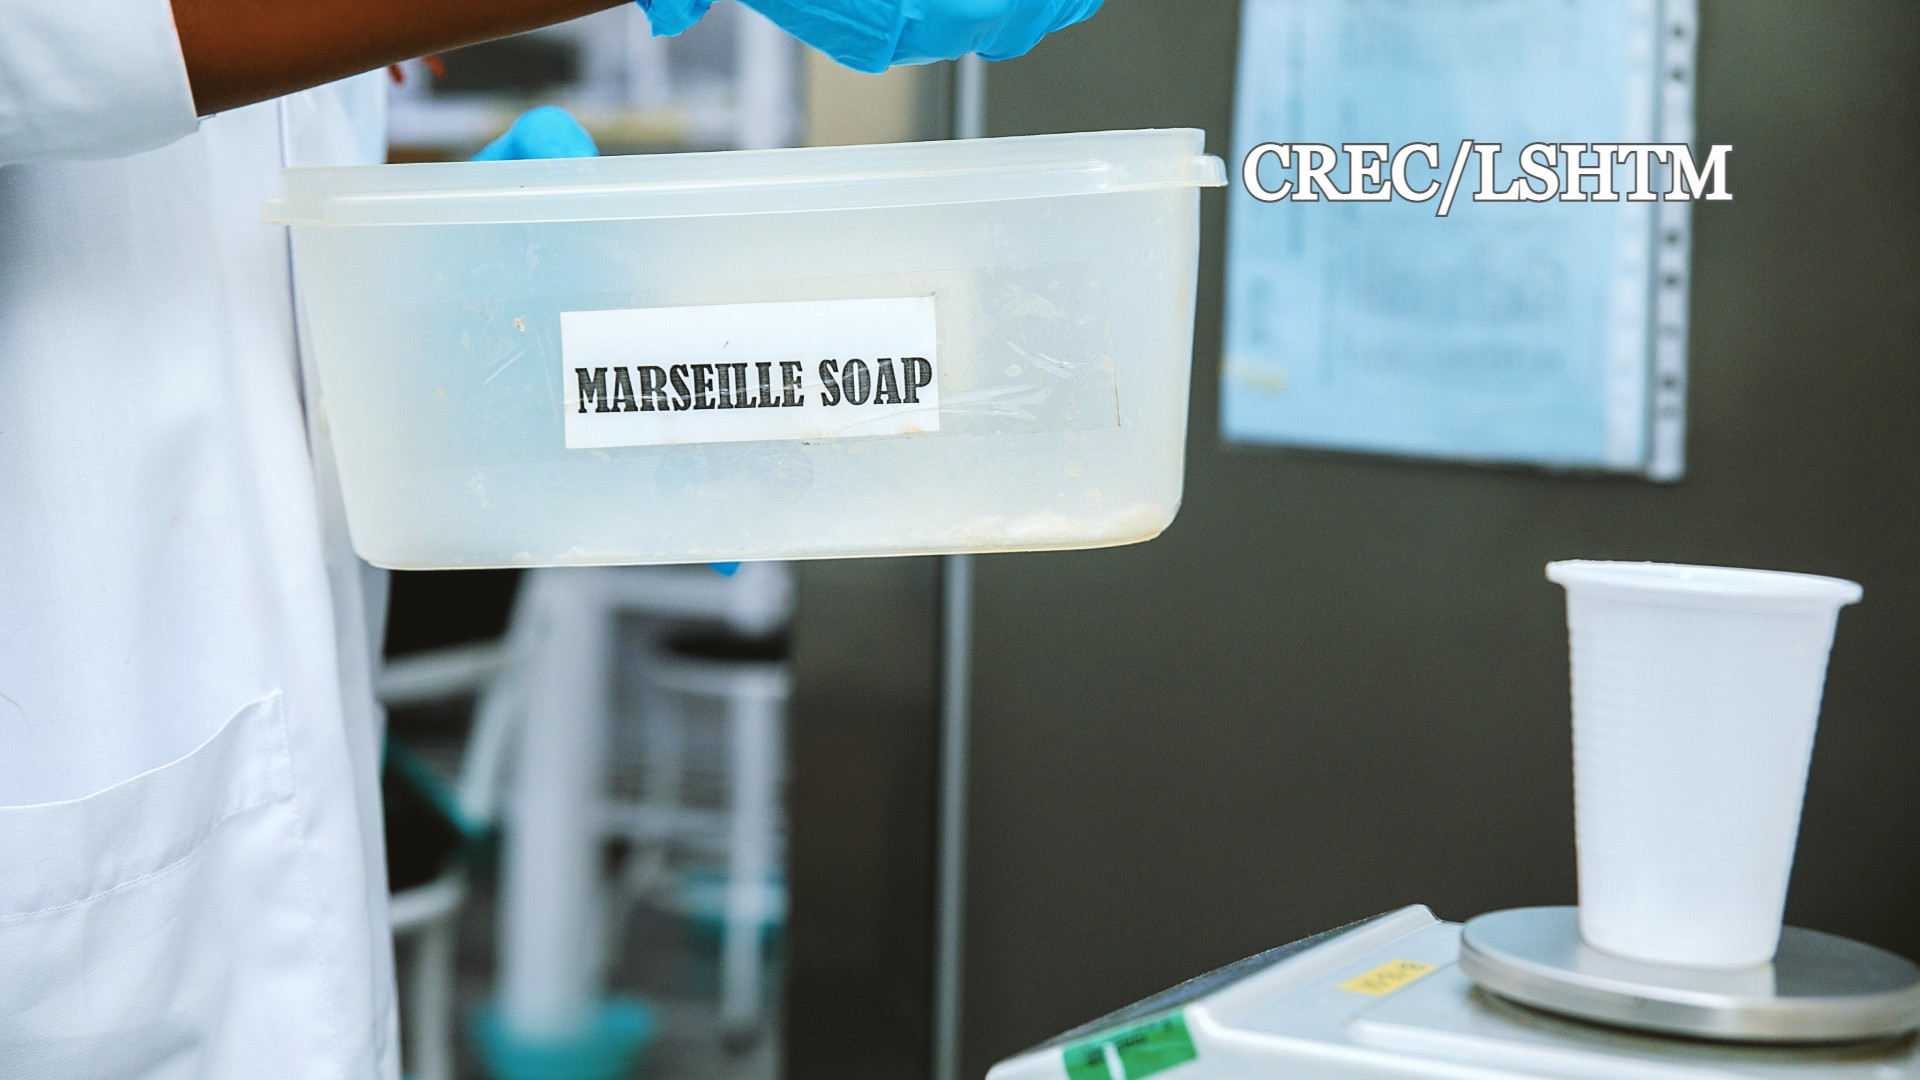 Weighing_of_marseille_soap_for_net_sample_washing